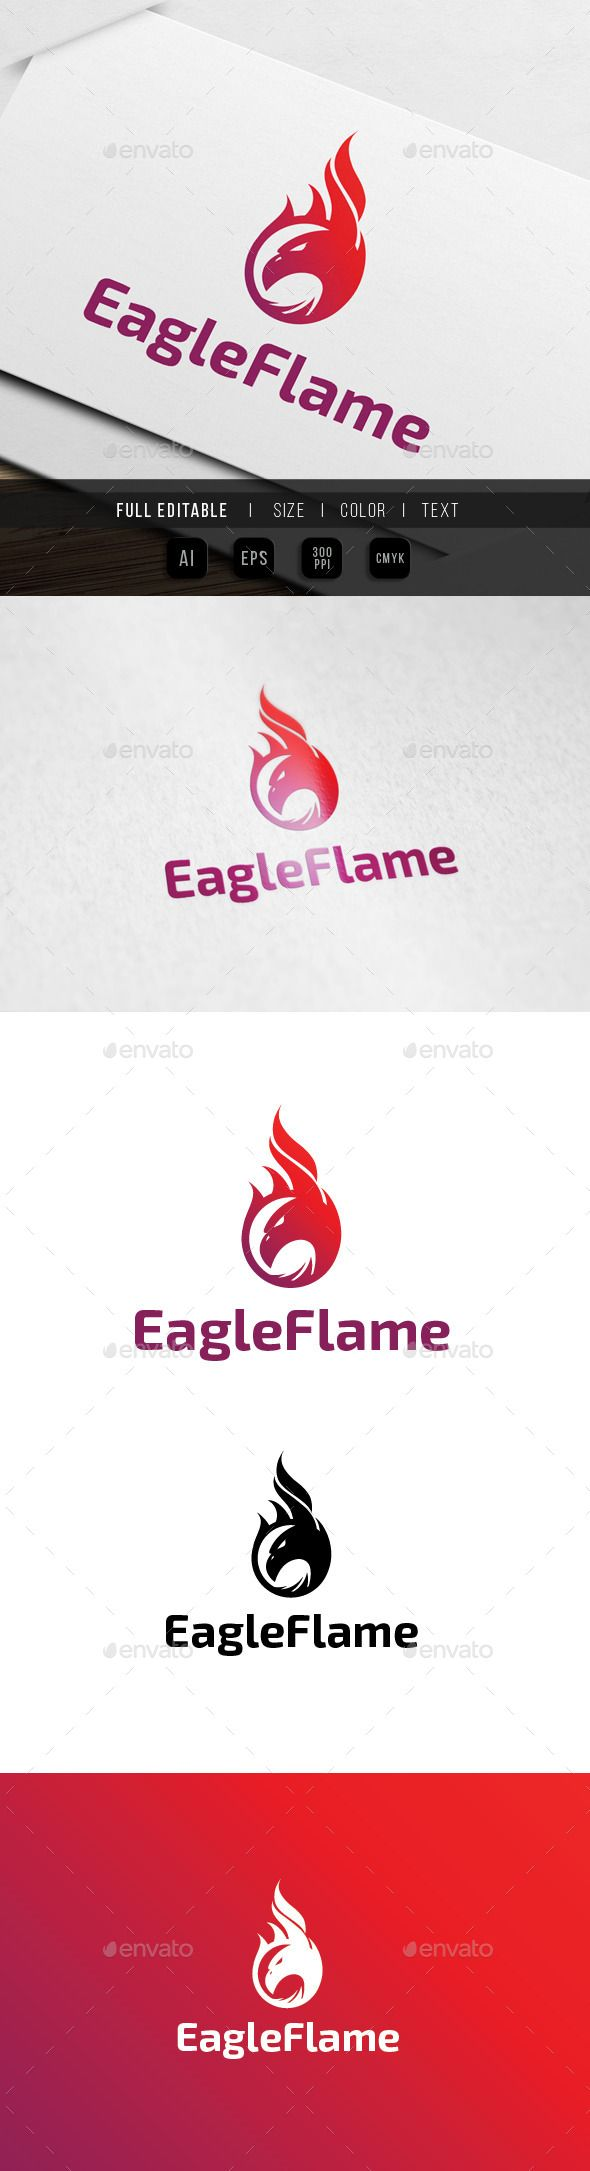 Eagle Flame / Fire Logo — Vector EPS #motorcycle #sport • Available here → https://graphicriver.net/item/eagle-flame-fire-logo/9911019?ref=pxcr